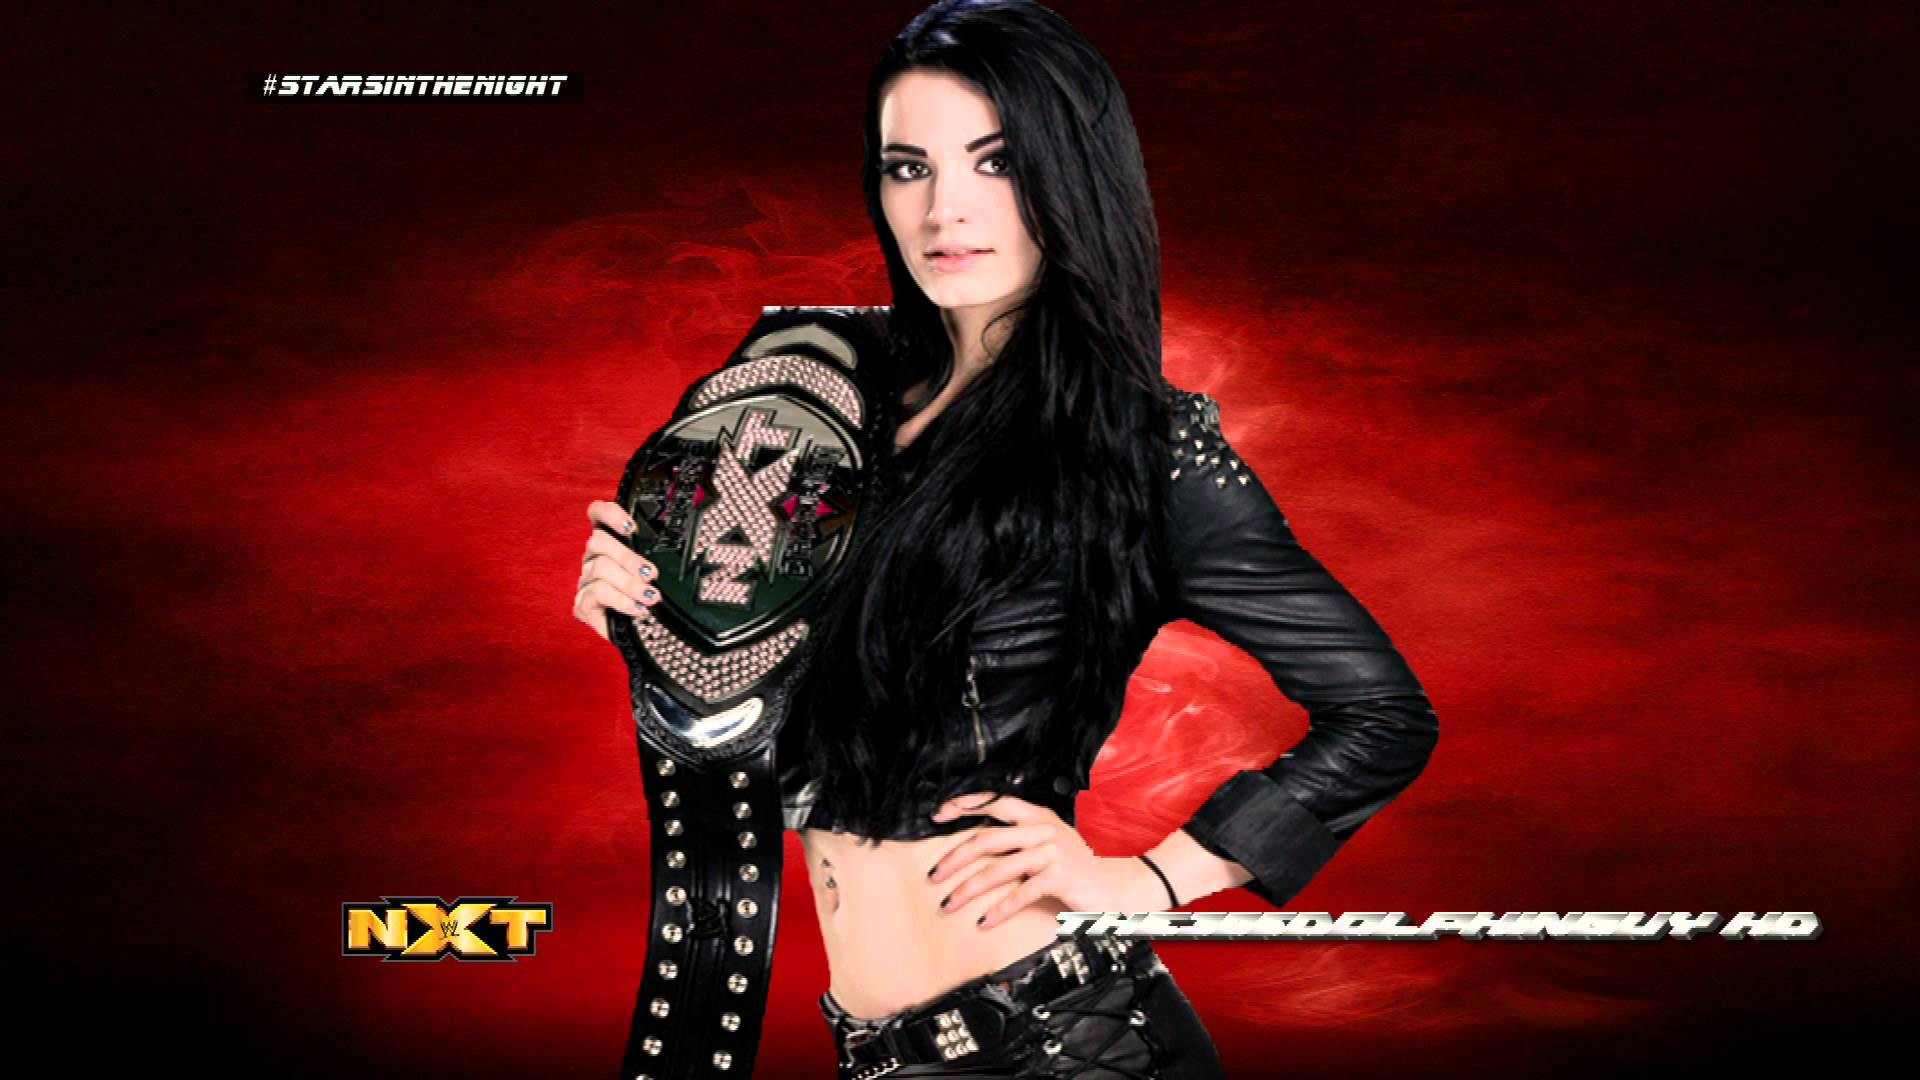 #WWE: Paige 2nd Theme – Stars in the Night (HQ + Arena Effects) – YouTube